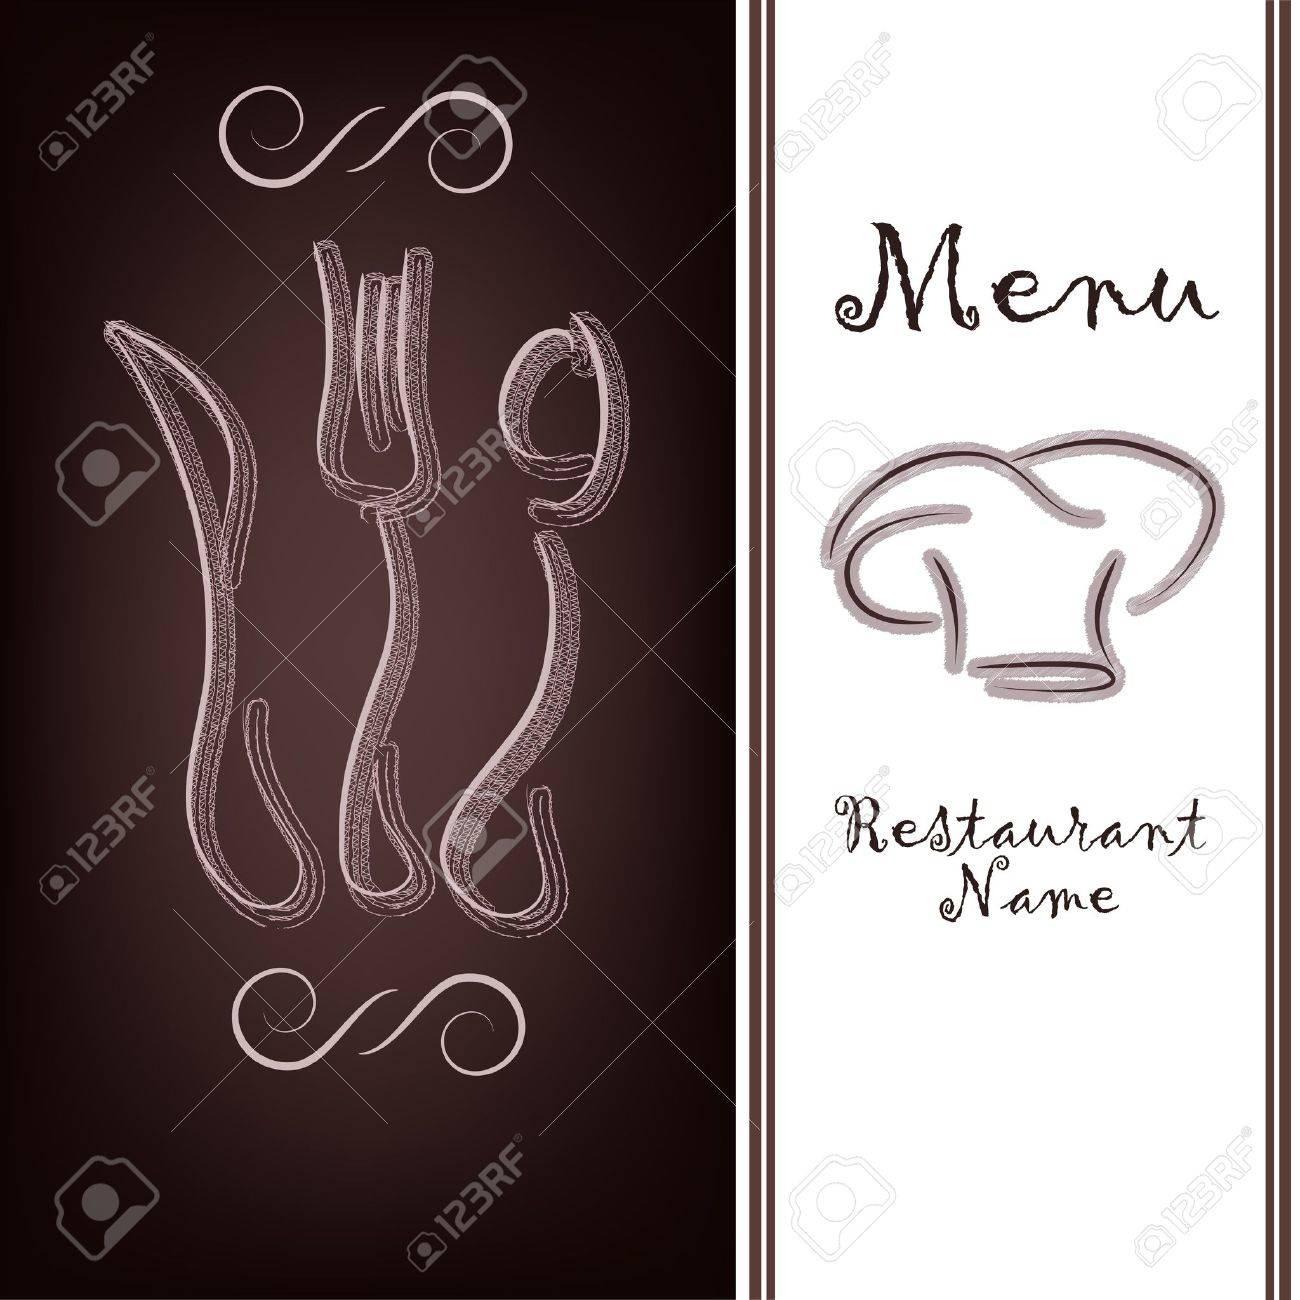 Outline of tableware on a brown background Stock Vector - 13302818